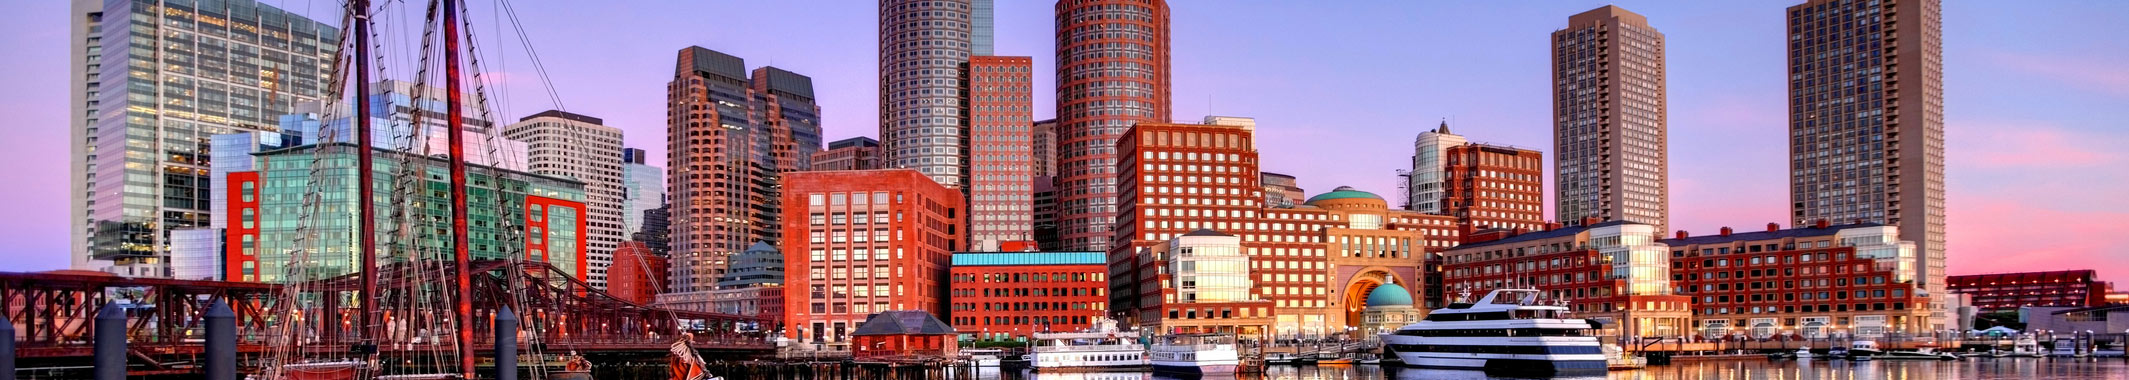 INTA-2019-Boston-Annual-Meeting---Asia-Business-Law-Journal